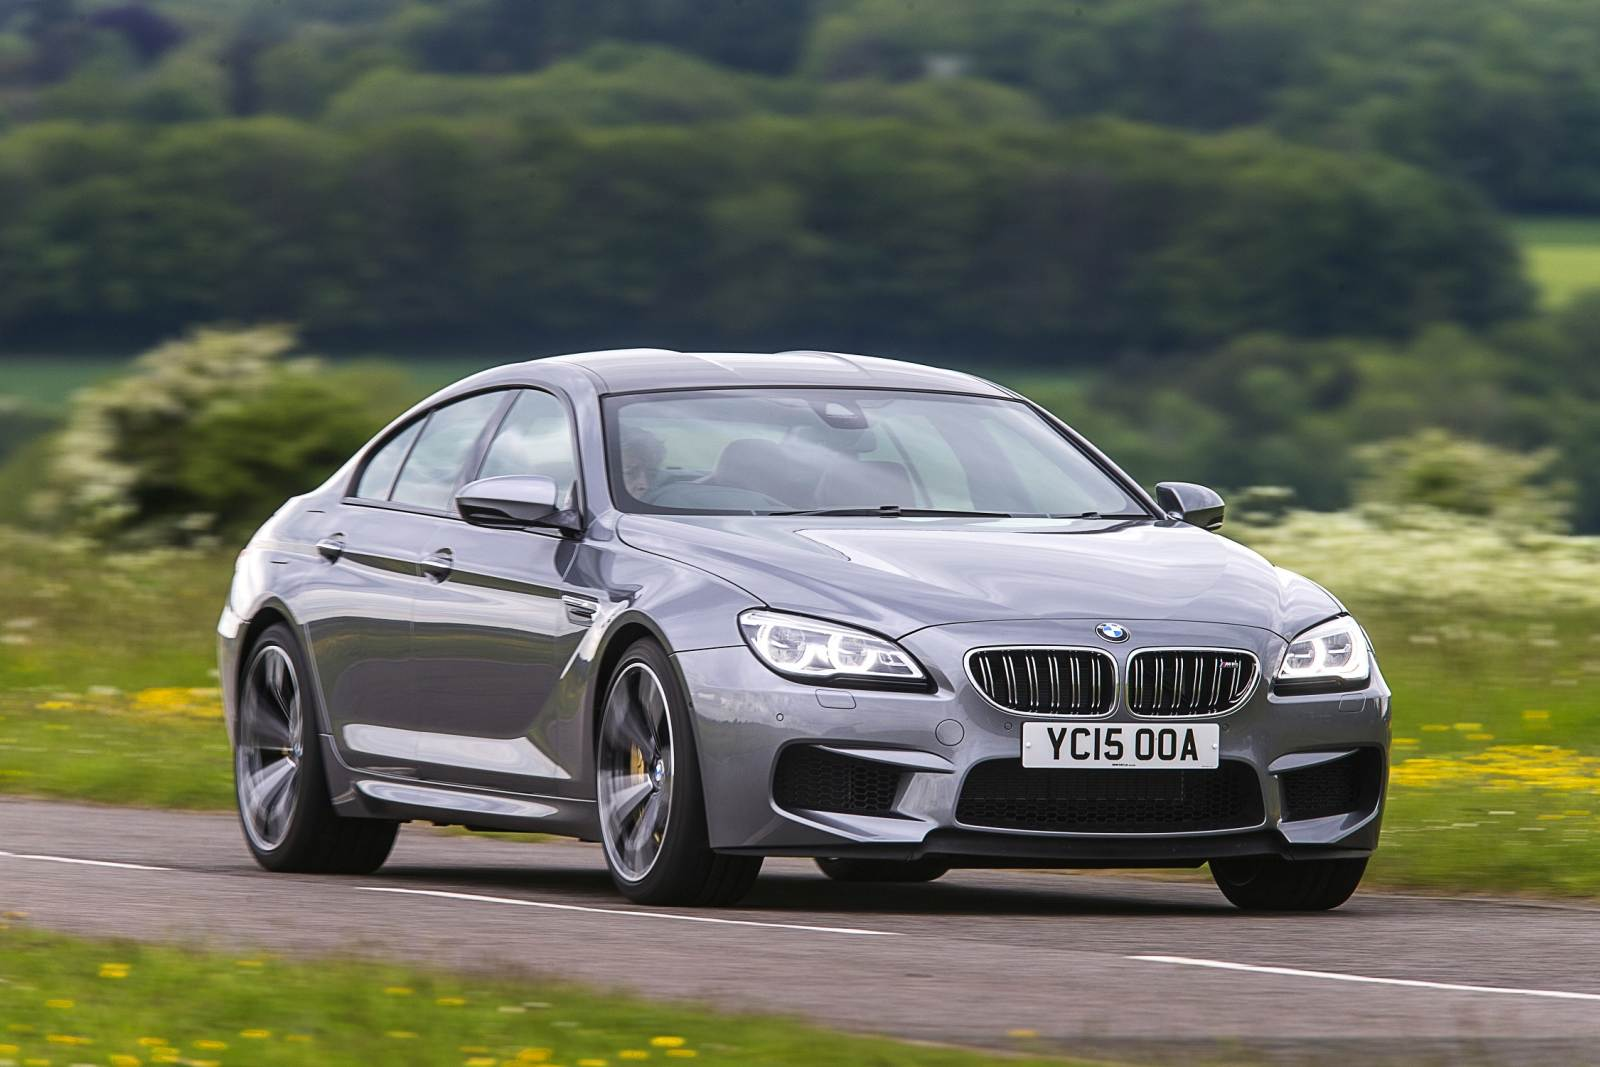 new bmw m6 gran coup launched in india prices starting at rs crore motoroids. Black Bedroom Furniture Sets. Home Design Ideas